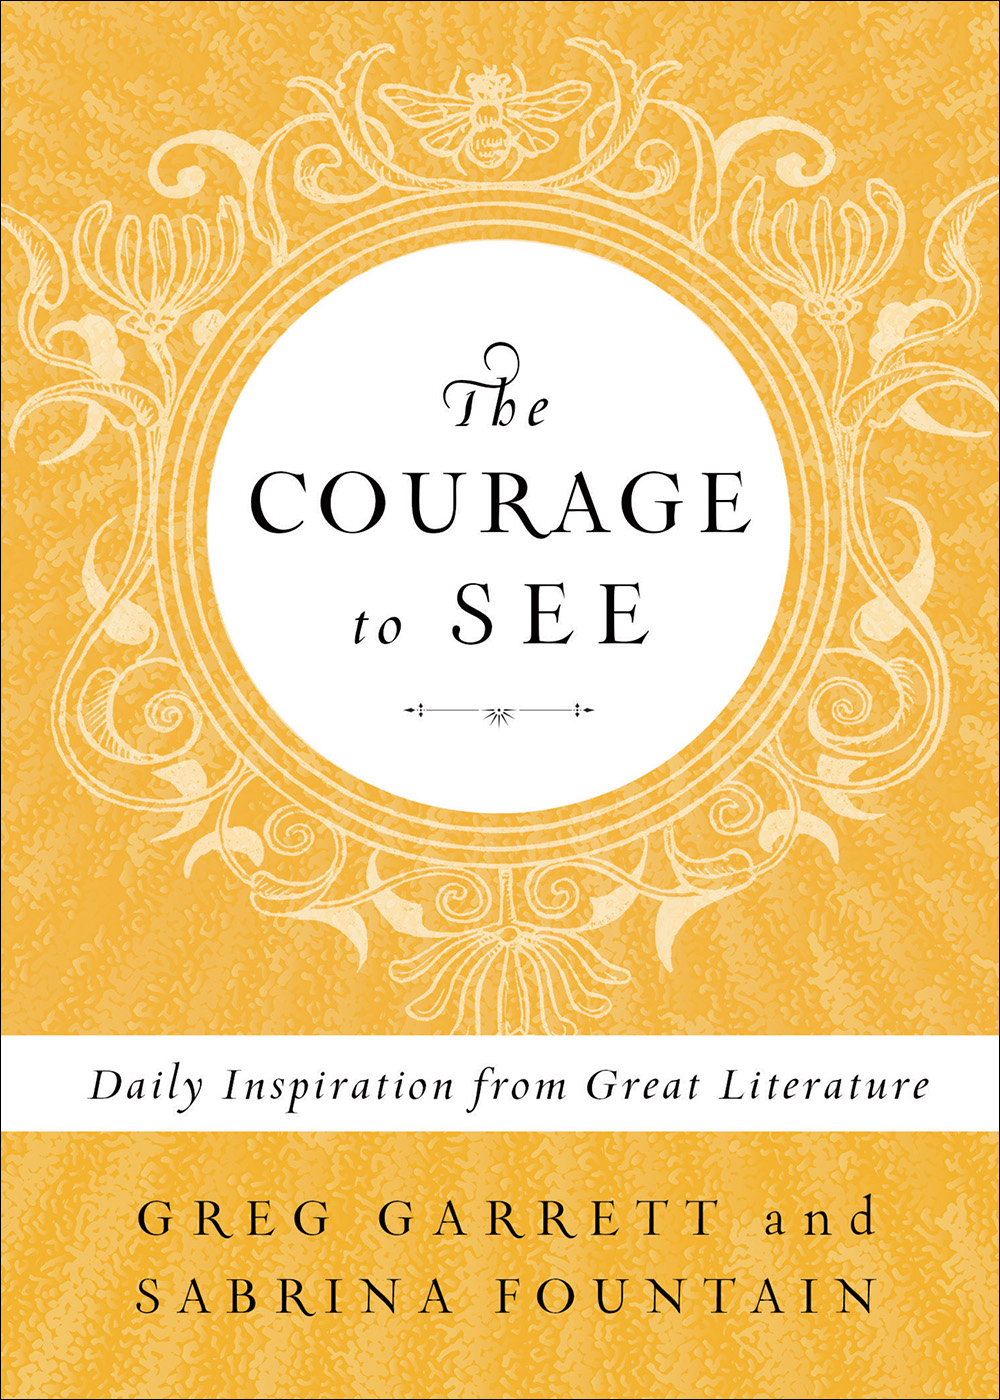 The Courage to See